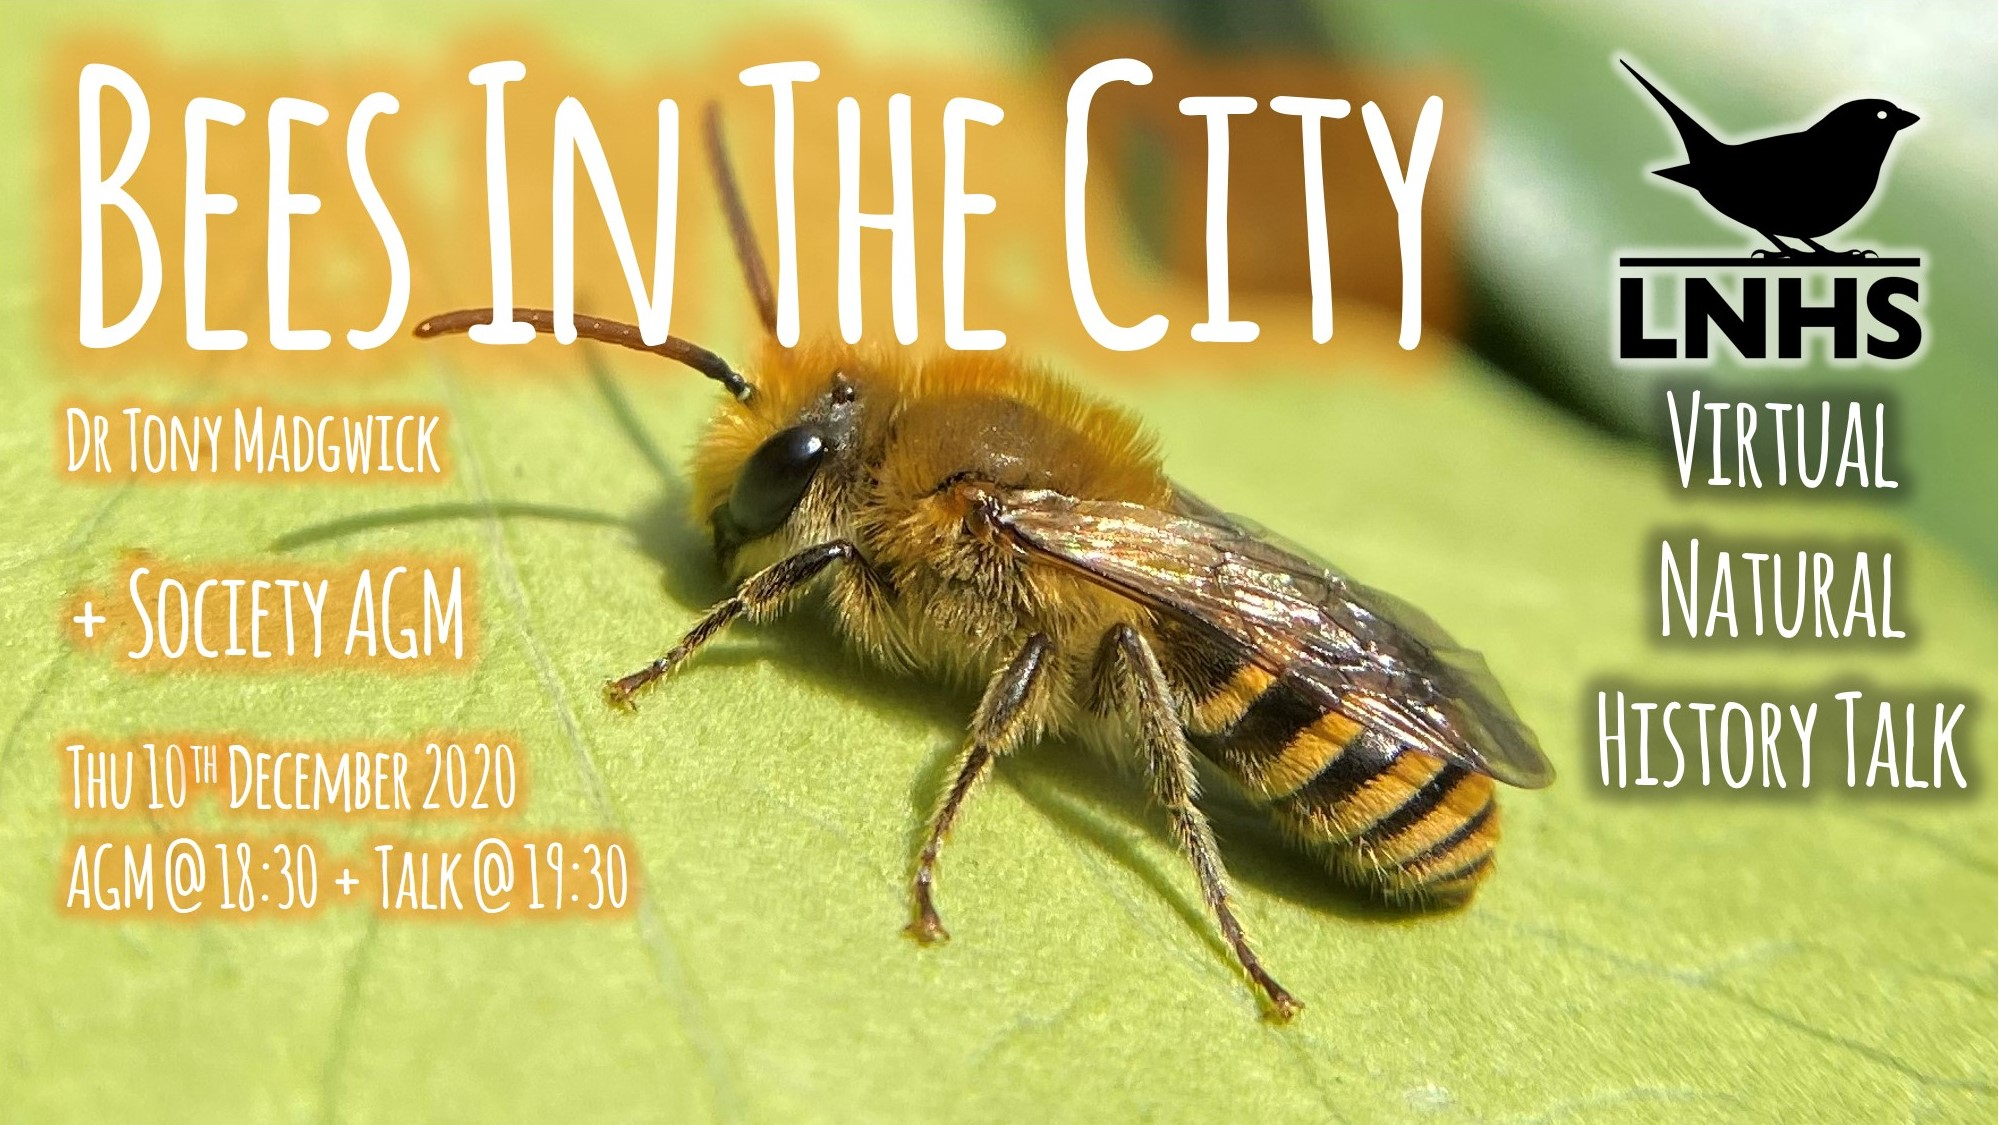 Bees in the City AD